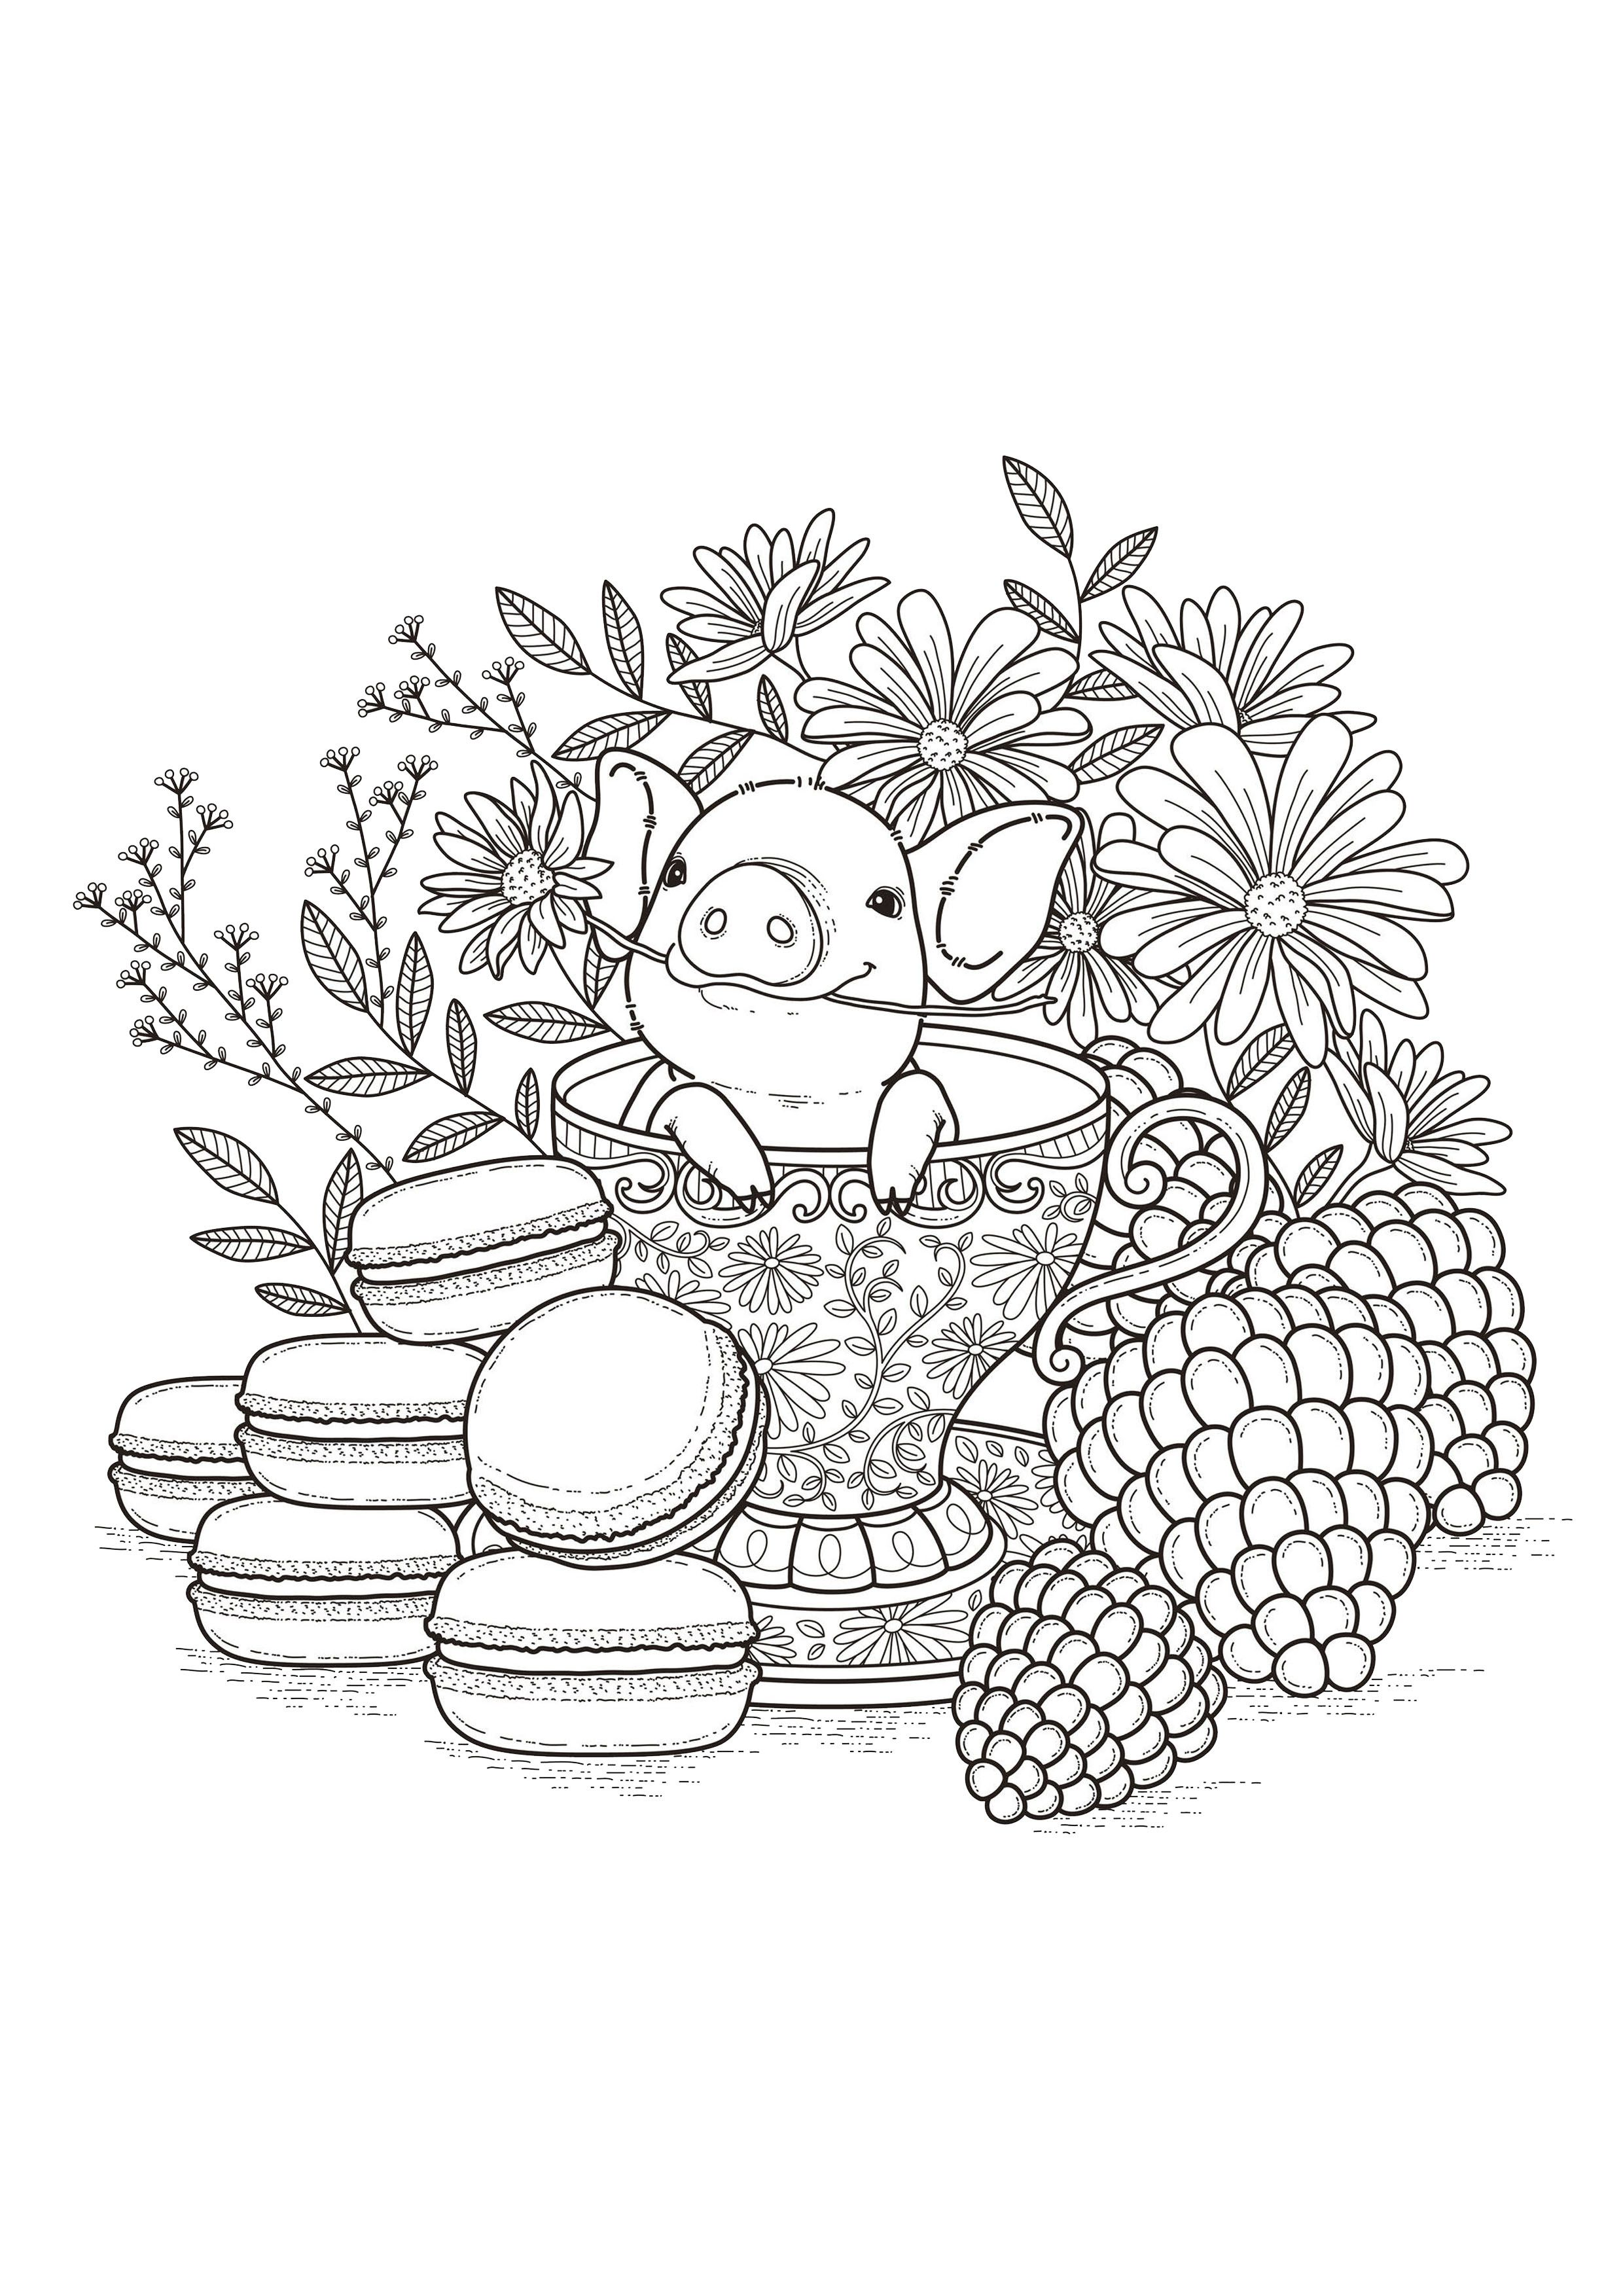 more macaroons or fruits from the gallery flowers and